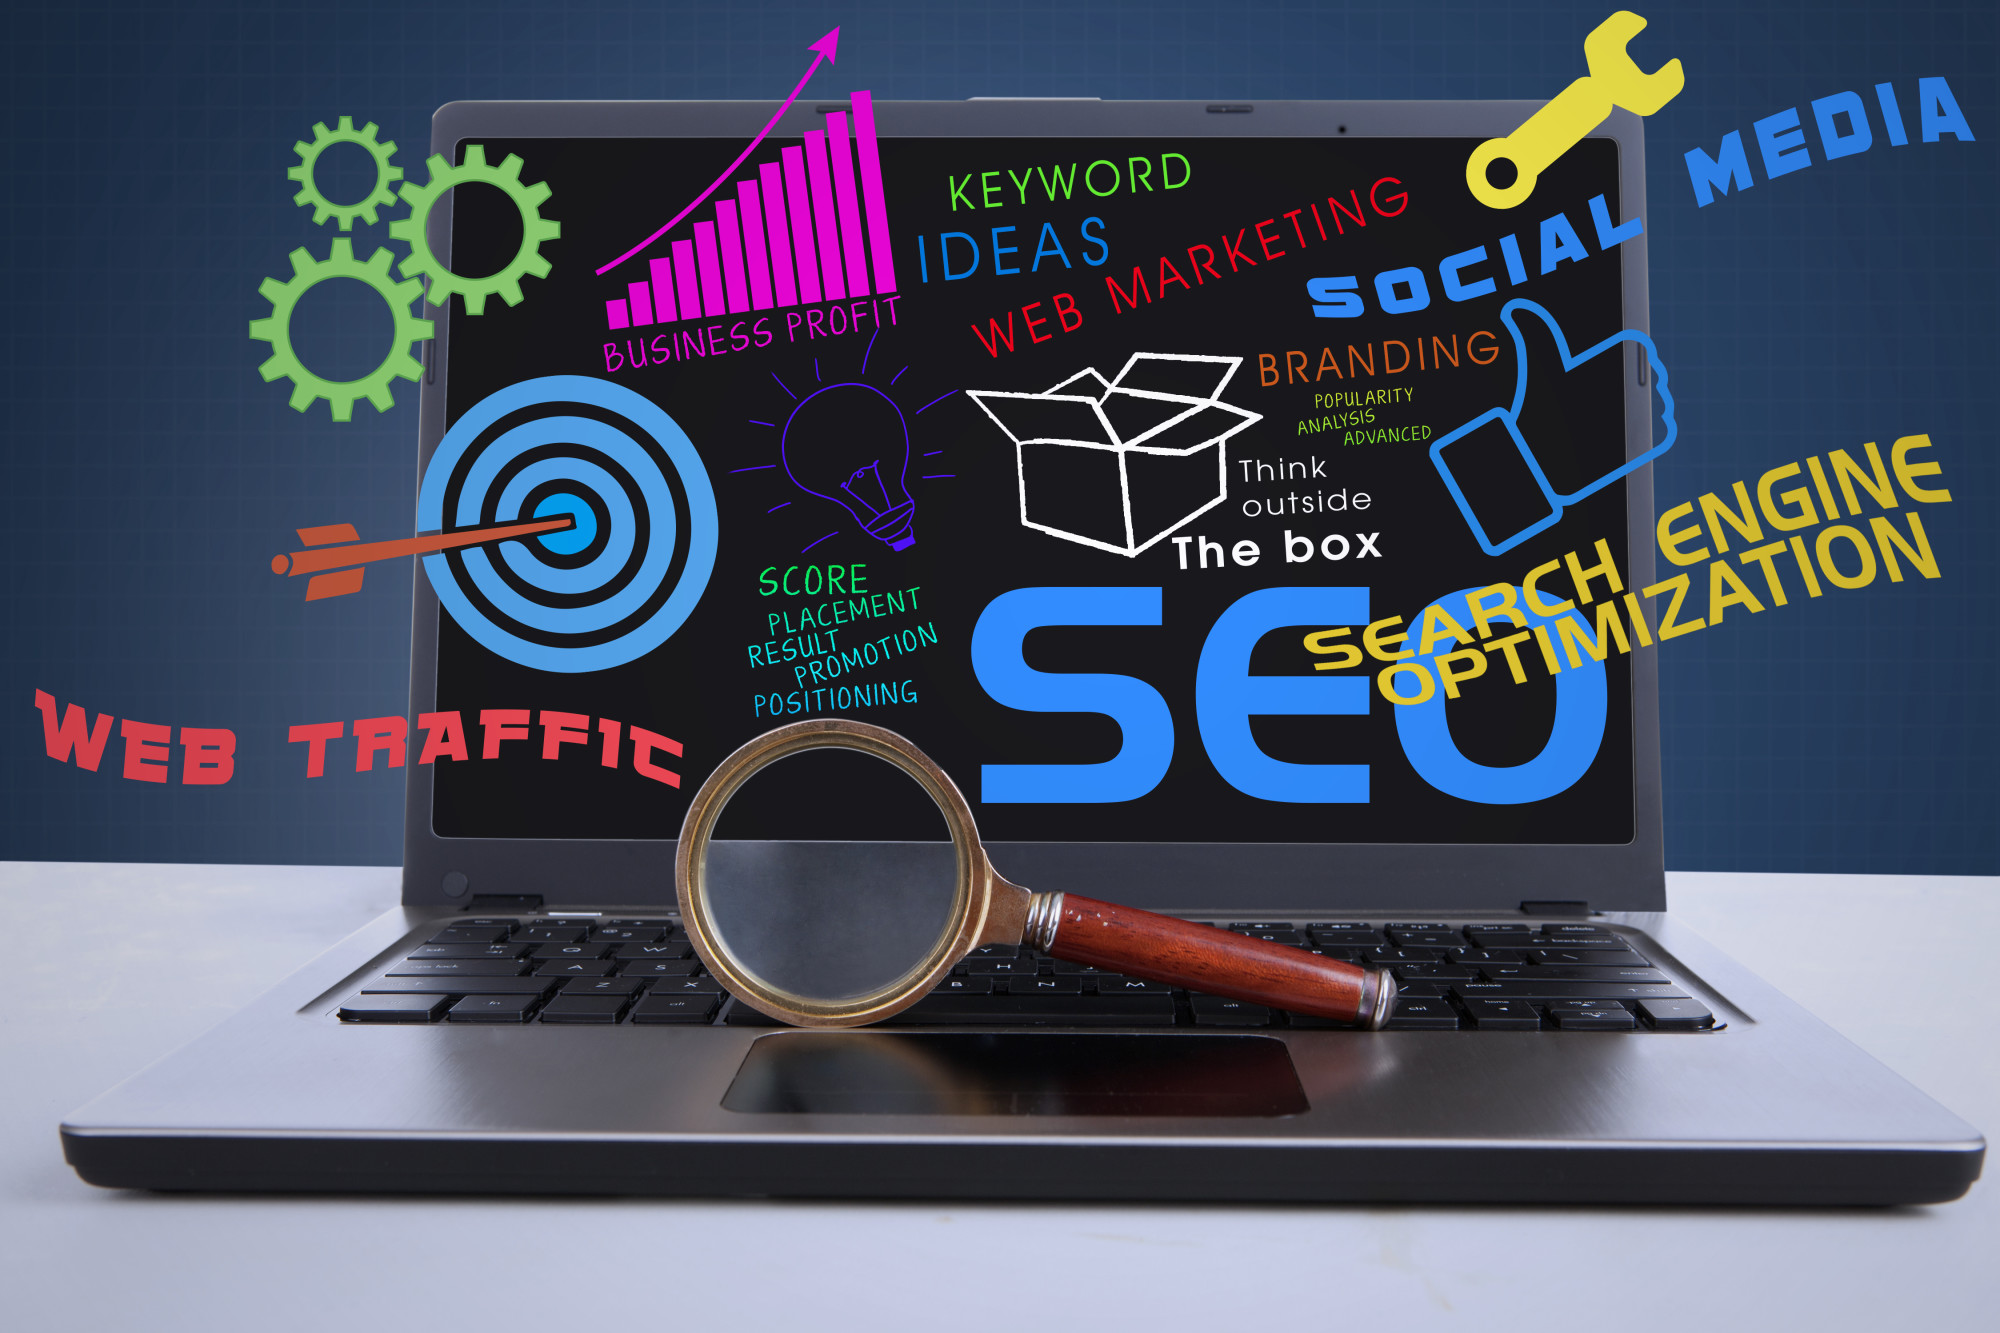 SEO web traffic social media and related terms